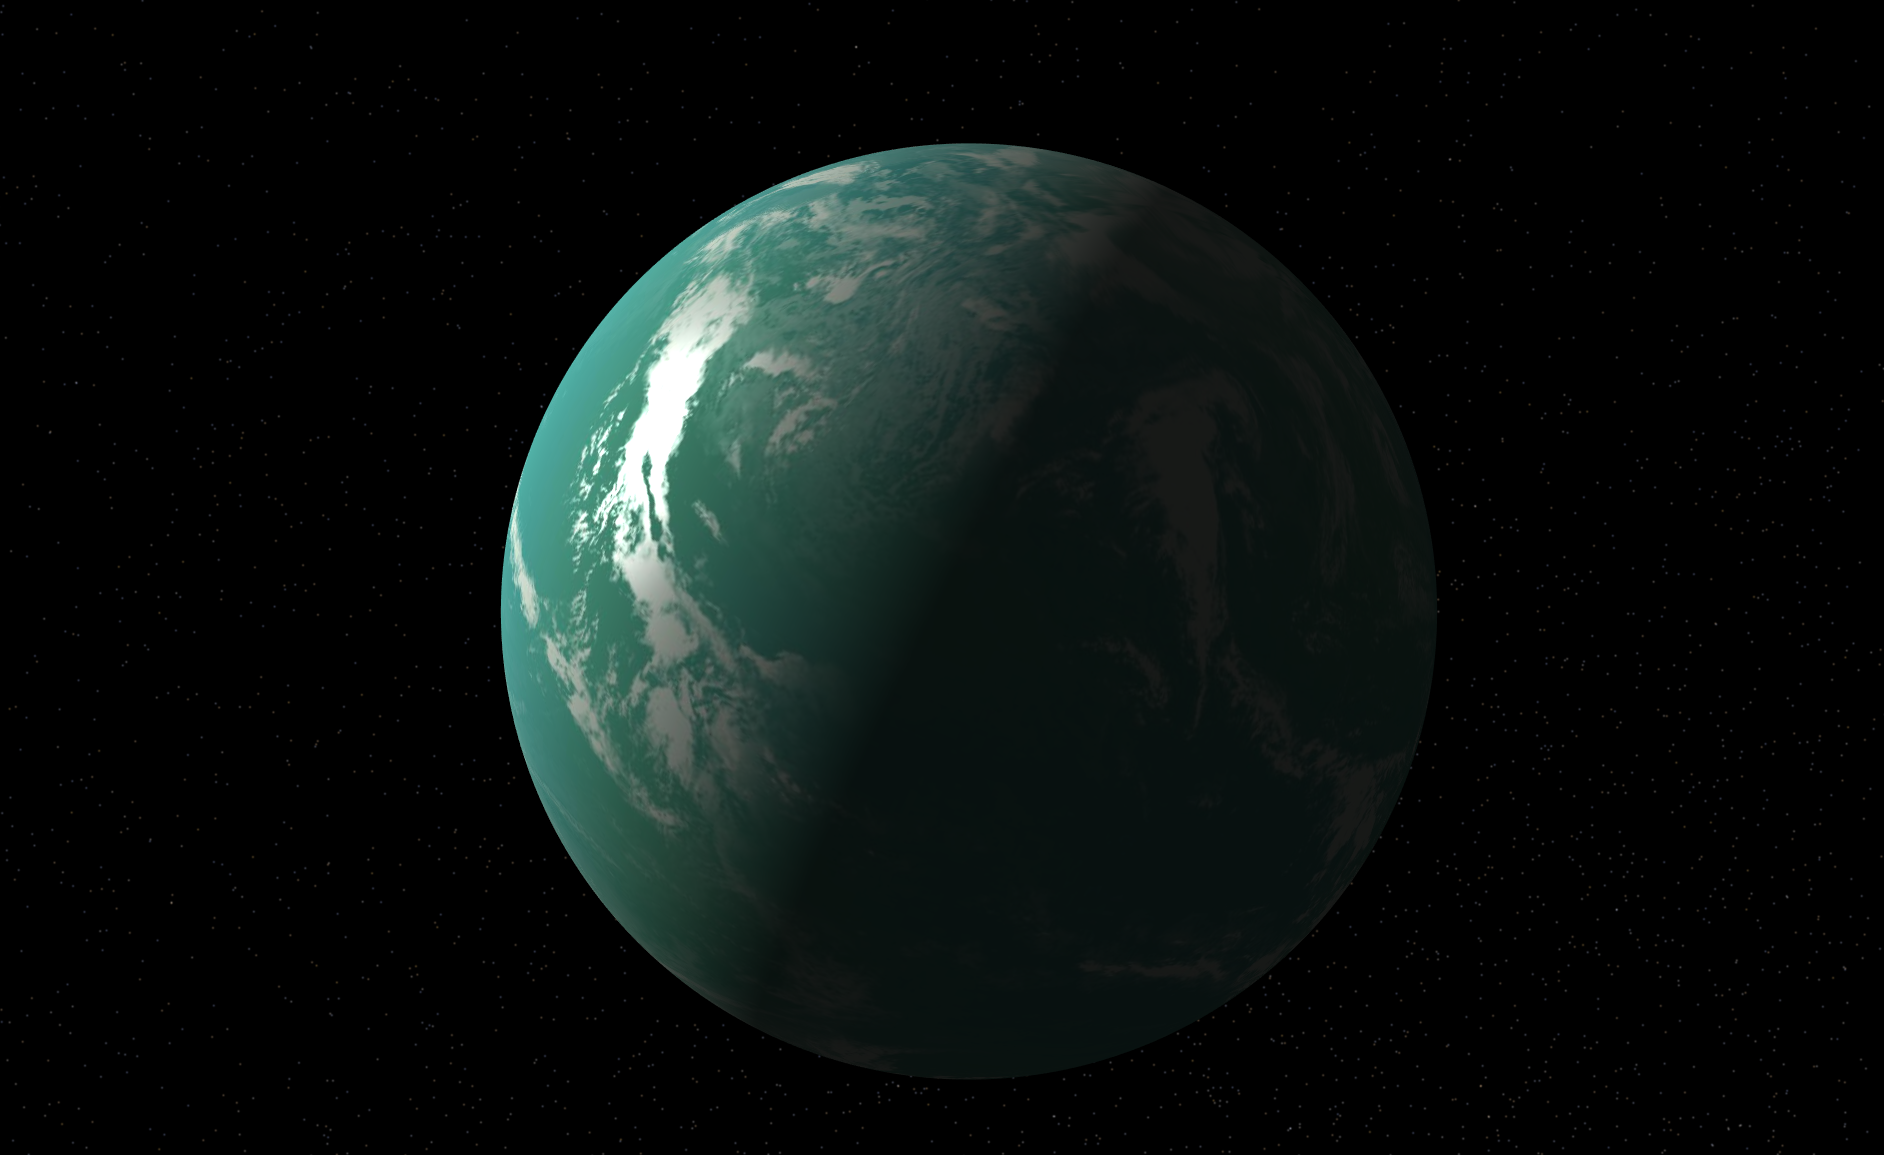 An artist's impression of an alien world covered in a super ocean - Image and banner image credits:  NASA exoplanet exploration